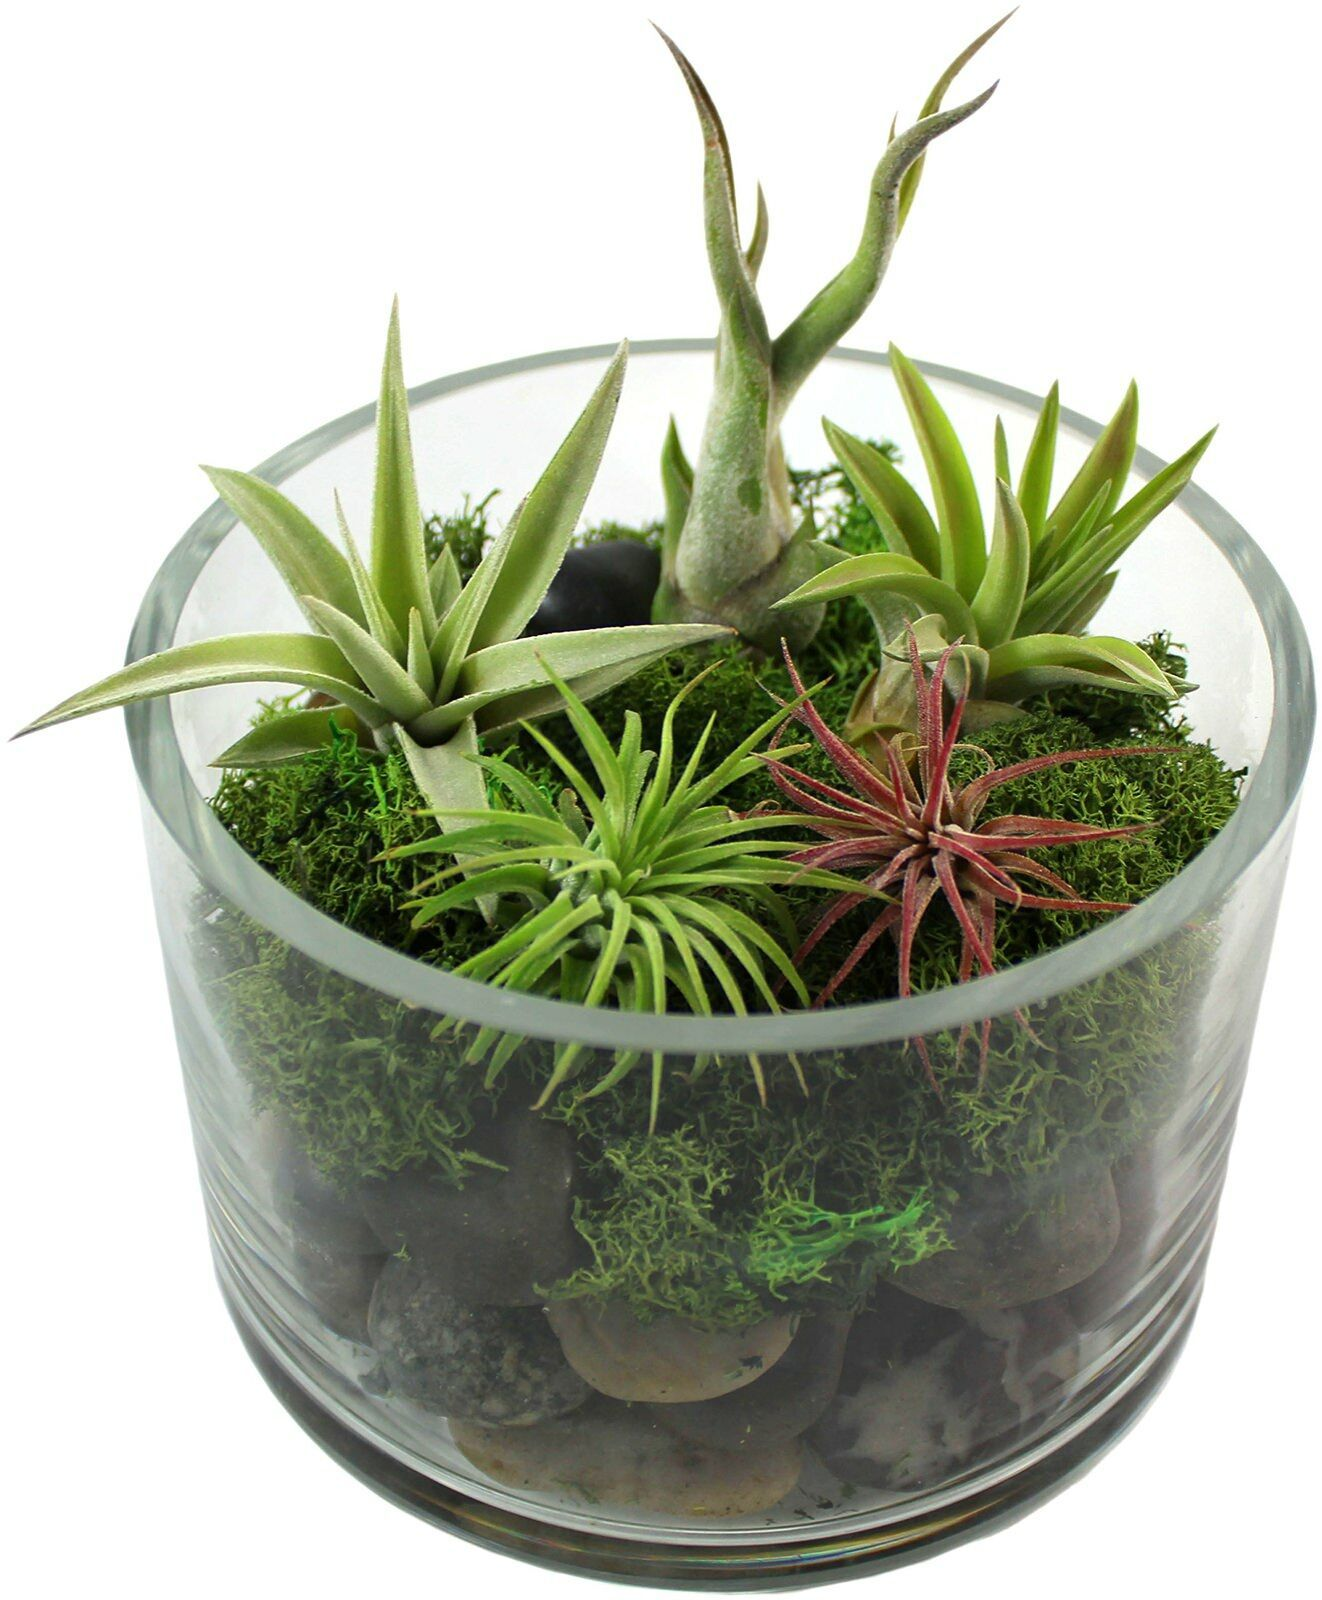 Primary image for 5 Live Plant Small Tillandsia Air Plants Assortment of Exotic Variety Pack